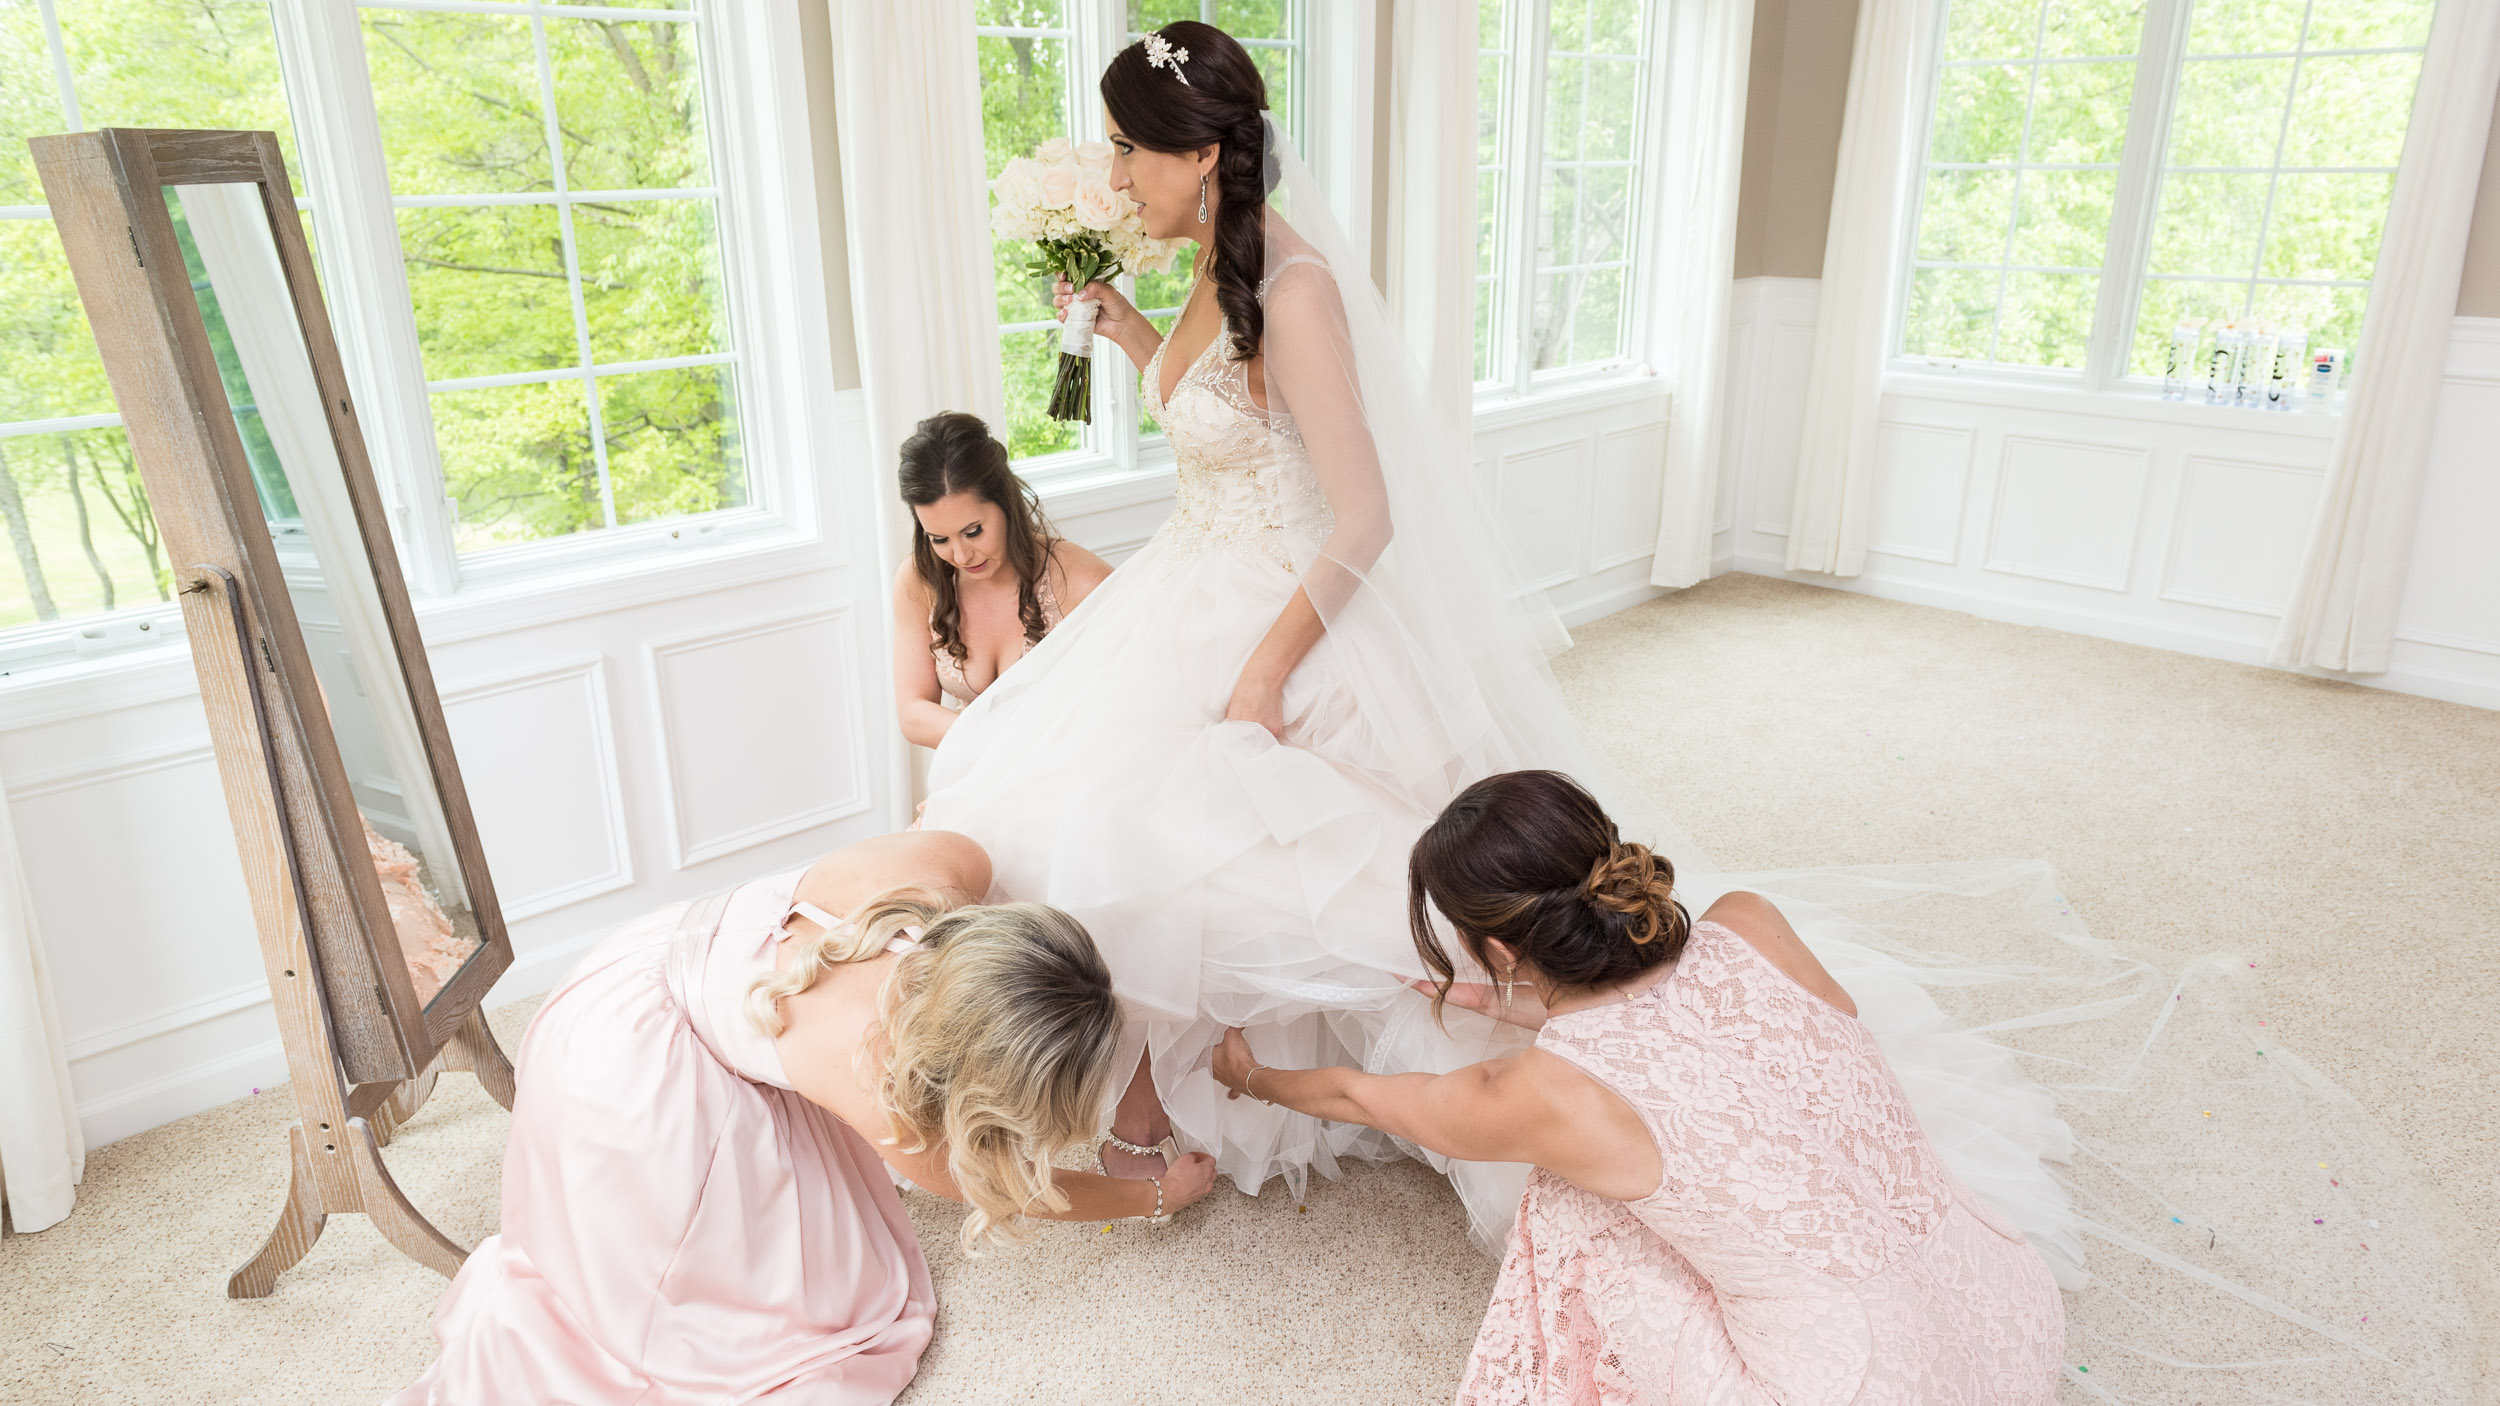 Bride-getting-ready-with-bridesmaids-11.jpg